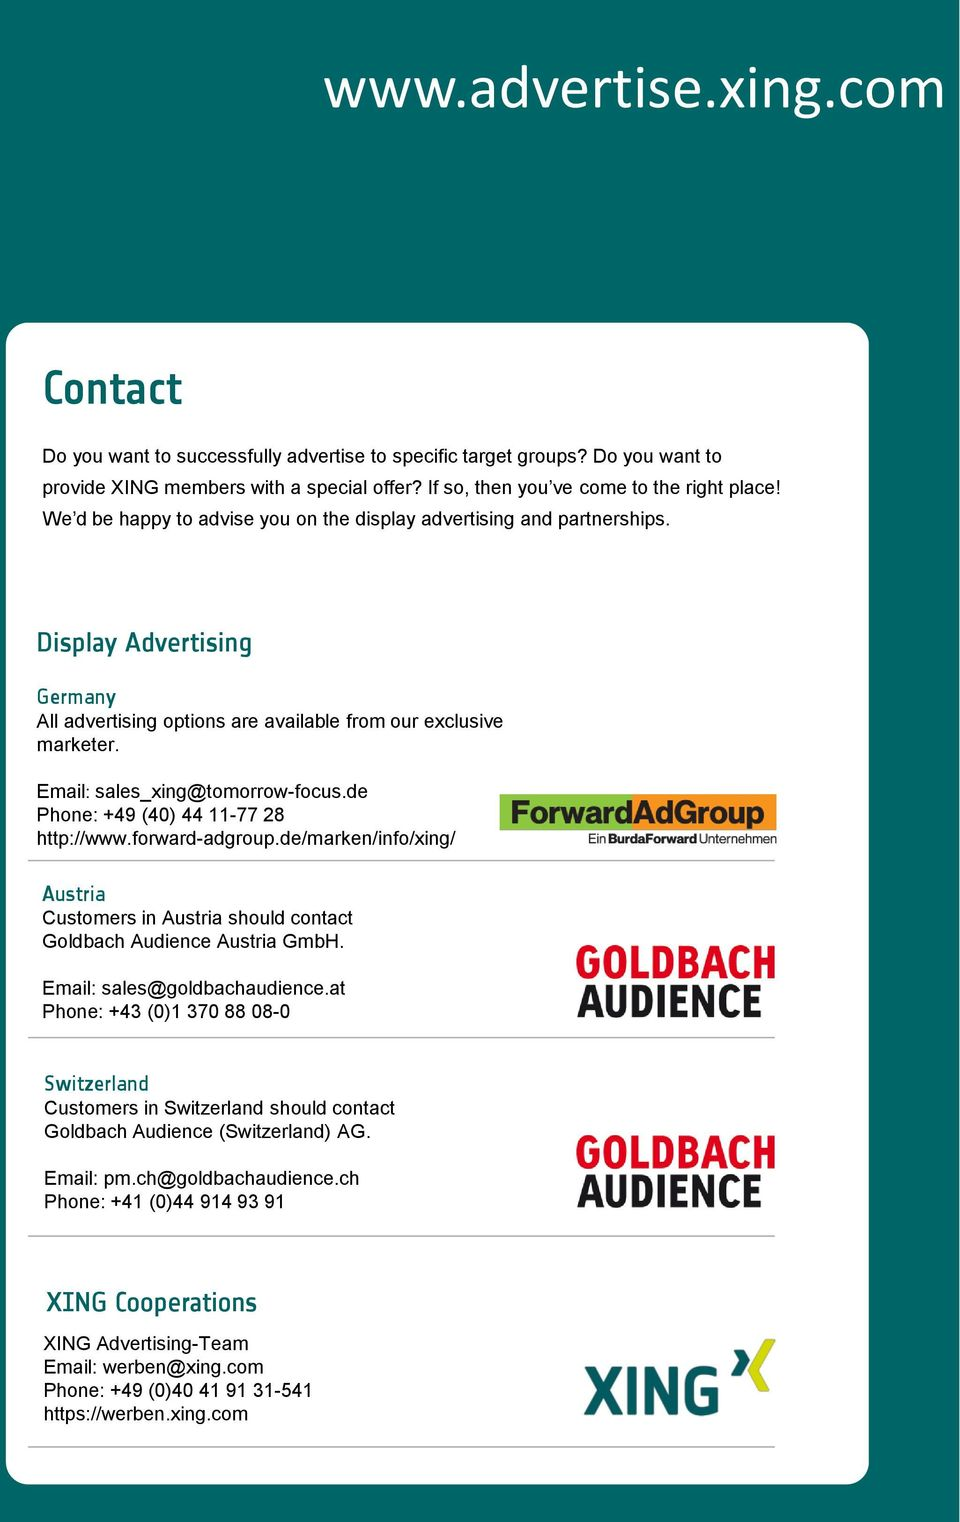 Email: sales_xing@tomorrow-focus.de Phone: +49 (40) 44 11-77 28 http://www.forward-adgroup.de/marken/info/xing/ Austria Customers in Austria should contact Goldbach Audience Austria GmbH.